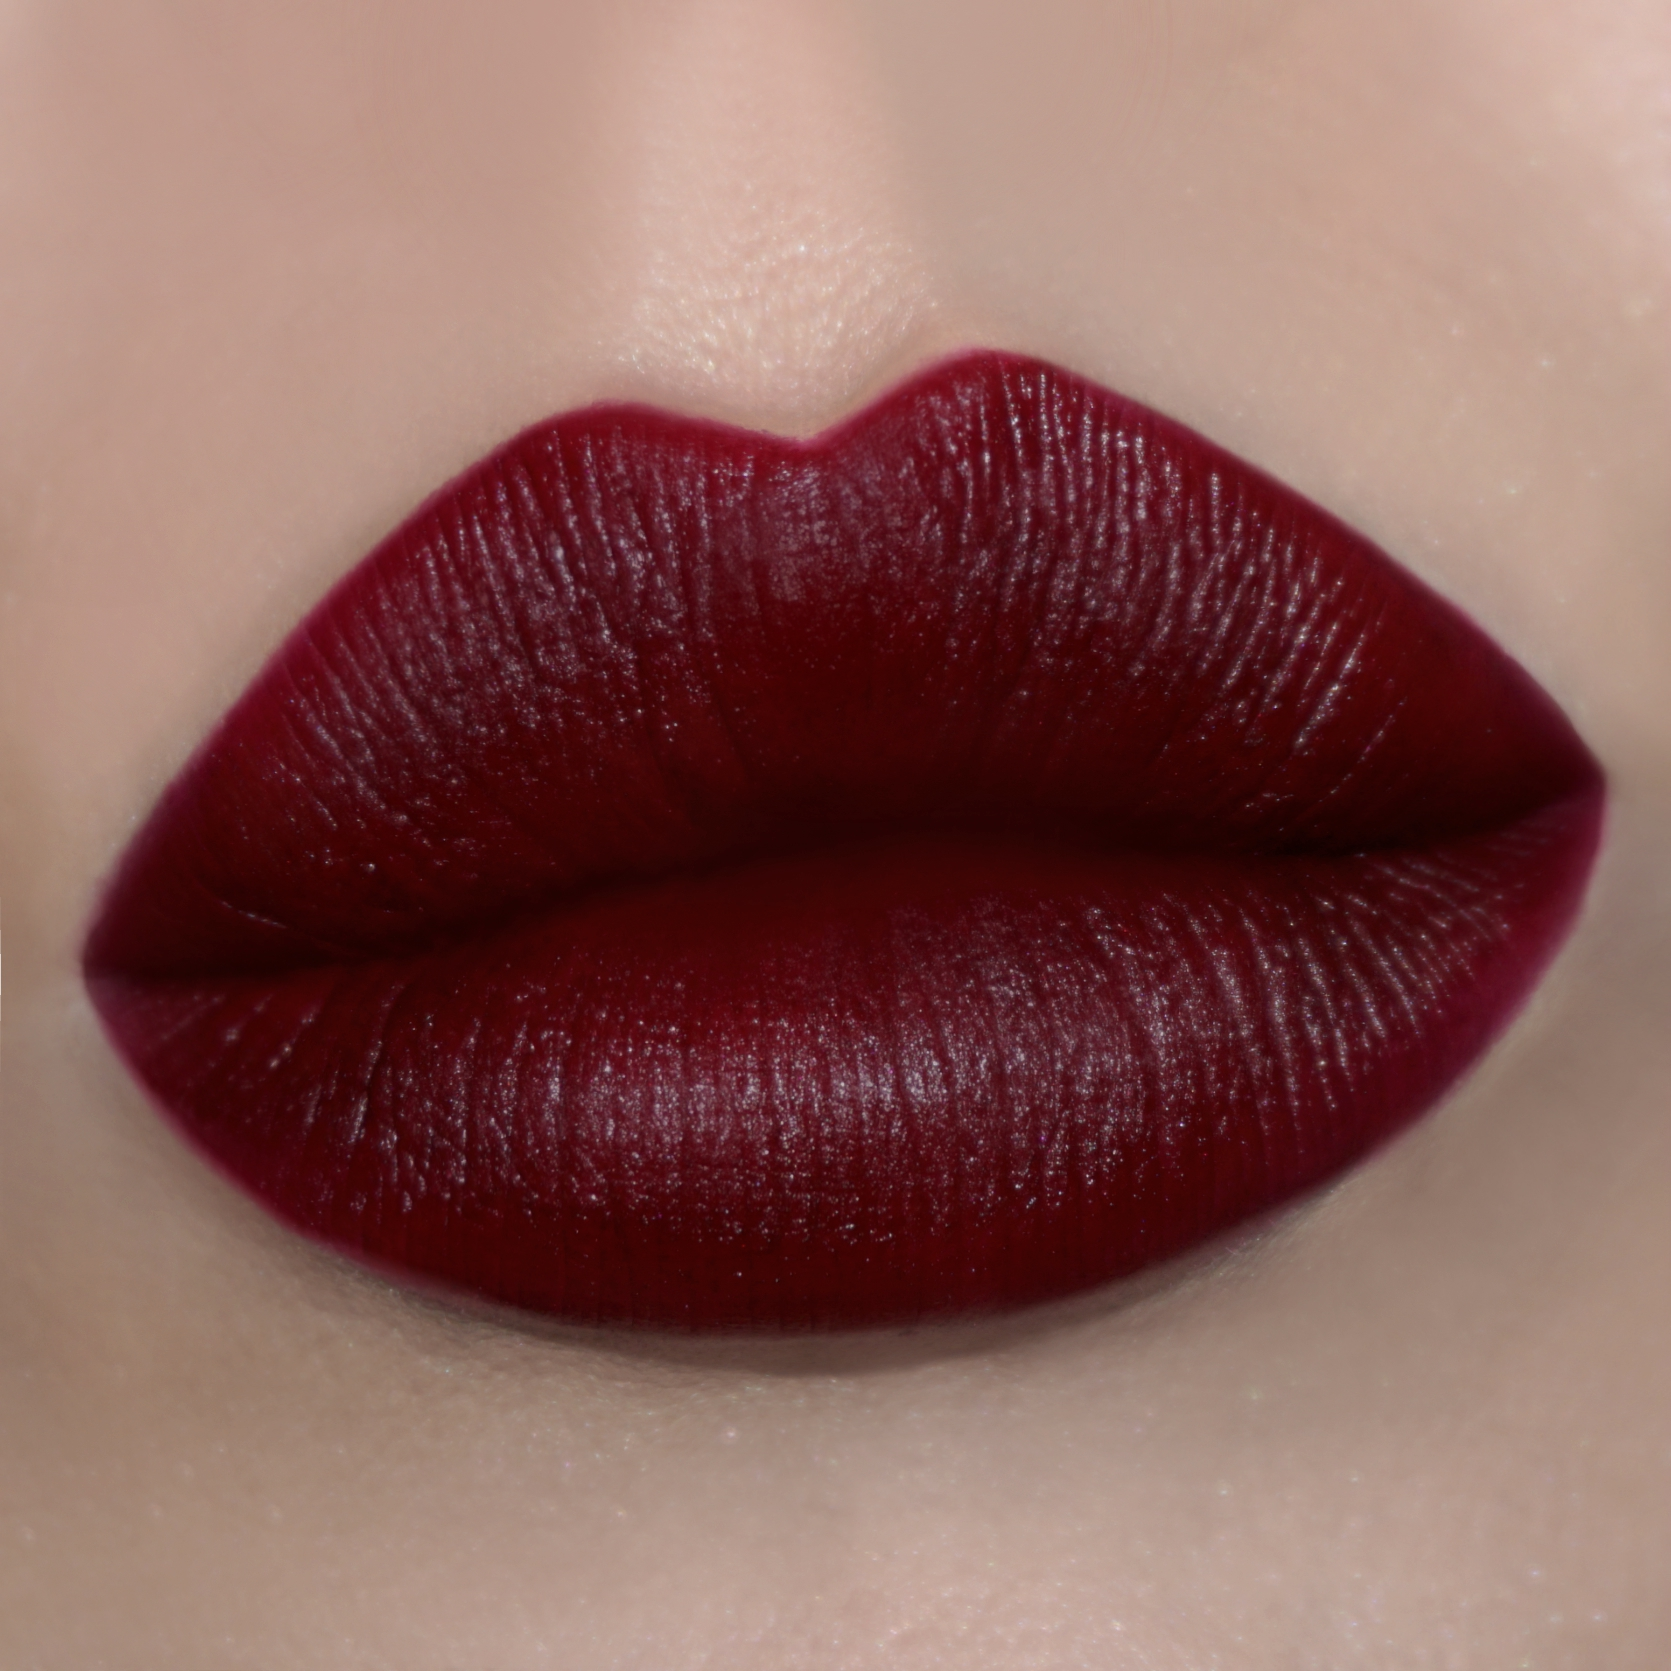 ef15c46849d0 Happy National Lipstick Day! - UnFranchise Blog